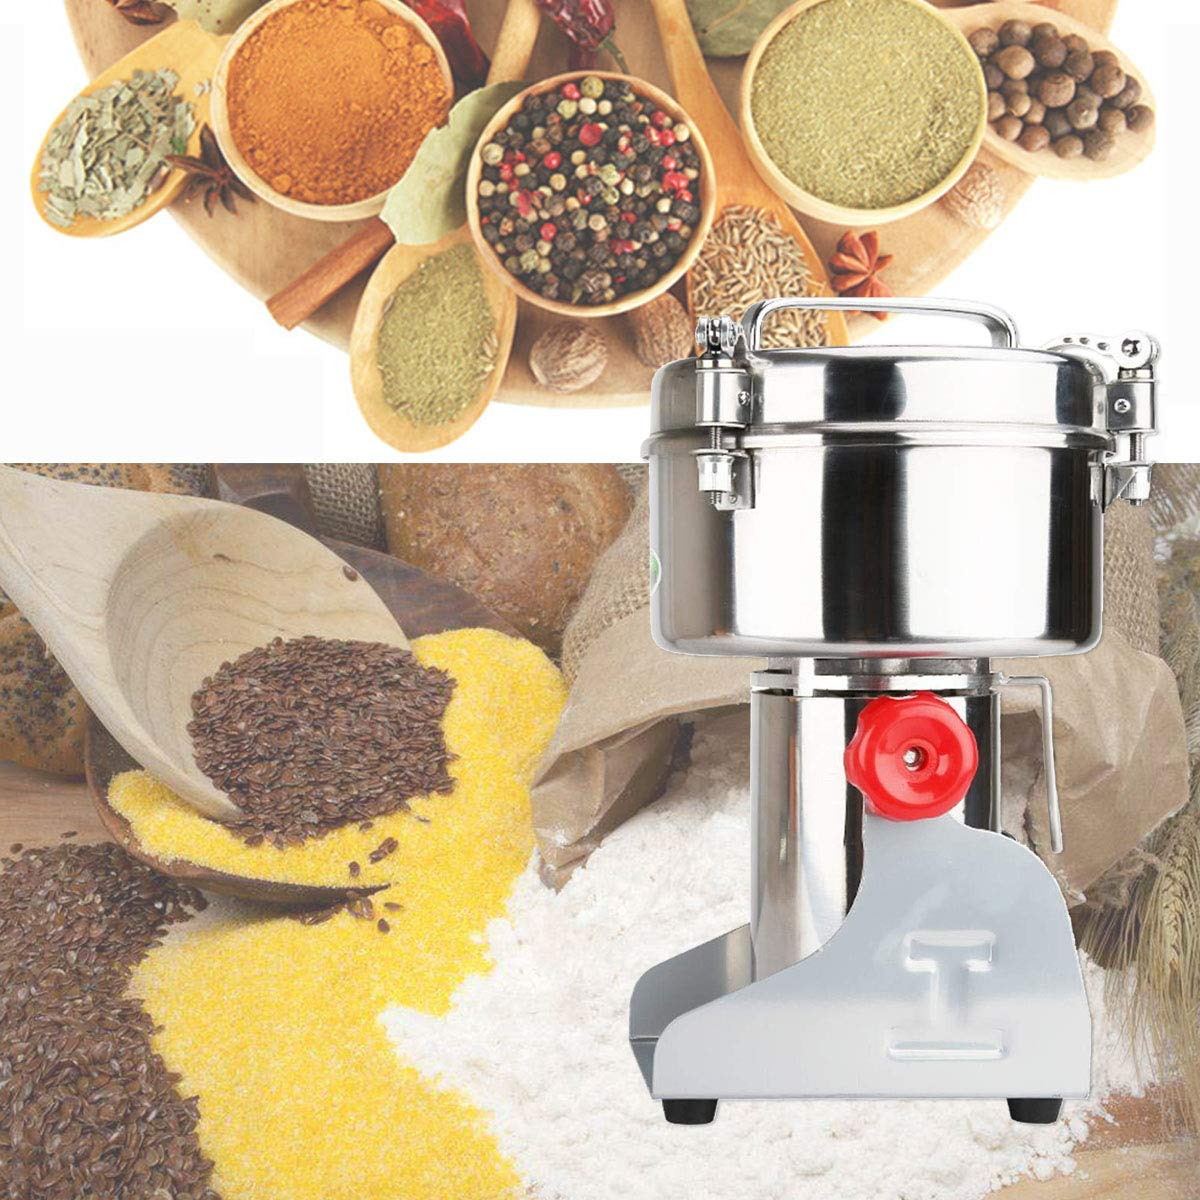 RRH 500G Swing Type Grain Mill Electric Spice Nut and Coffee Grinder High Speed 25000 RPM Stainless Steel Mill Grinder 2300W Powder Machine 50-300 Mesh, for Herbs Corn Sesame Soybean Pepper Bait Feed by RRH (Image #3)